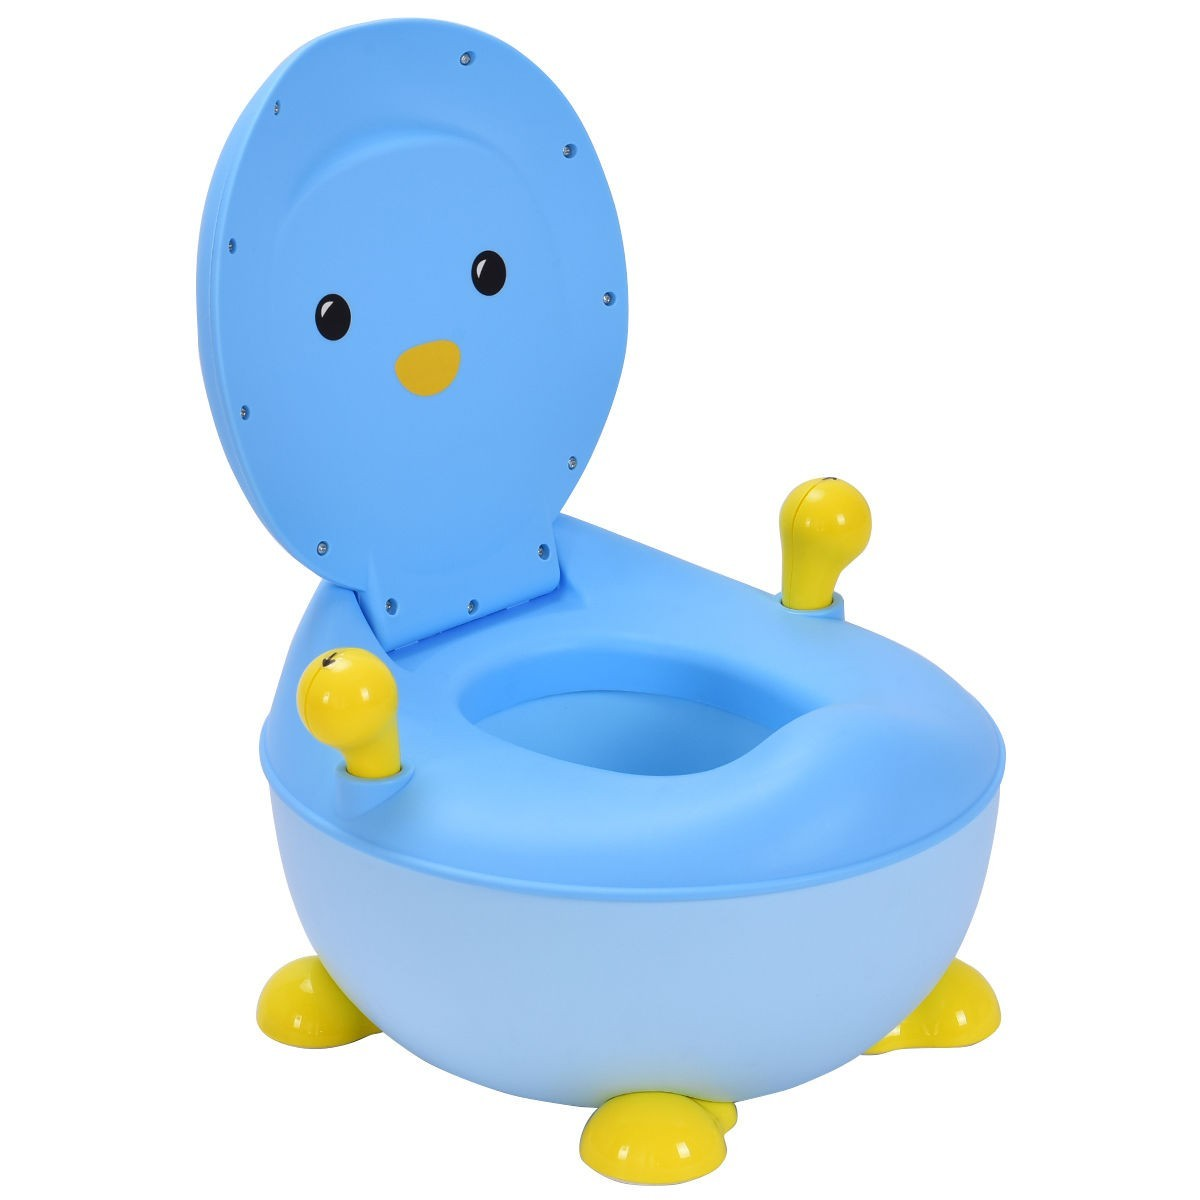 Penguin Portable Baby Seat Trainer Potty Toilet Blue by Apontus